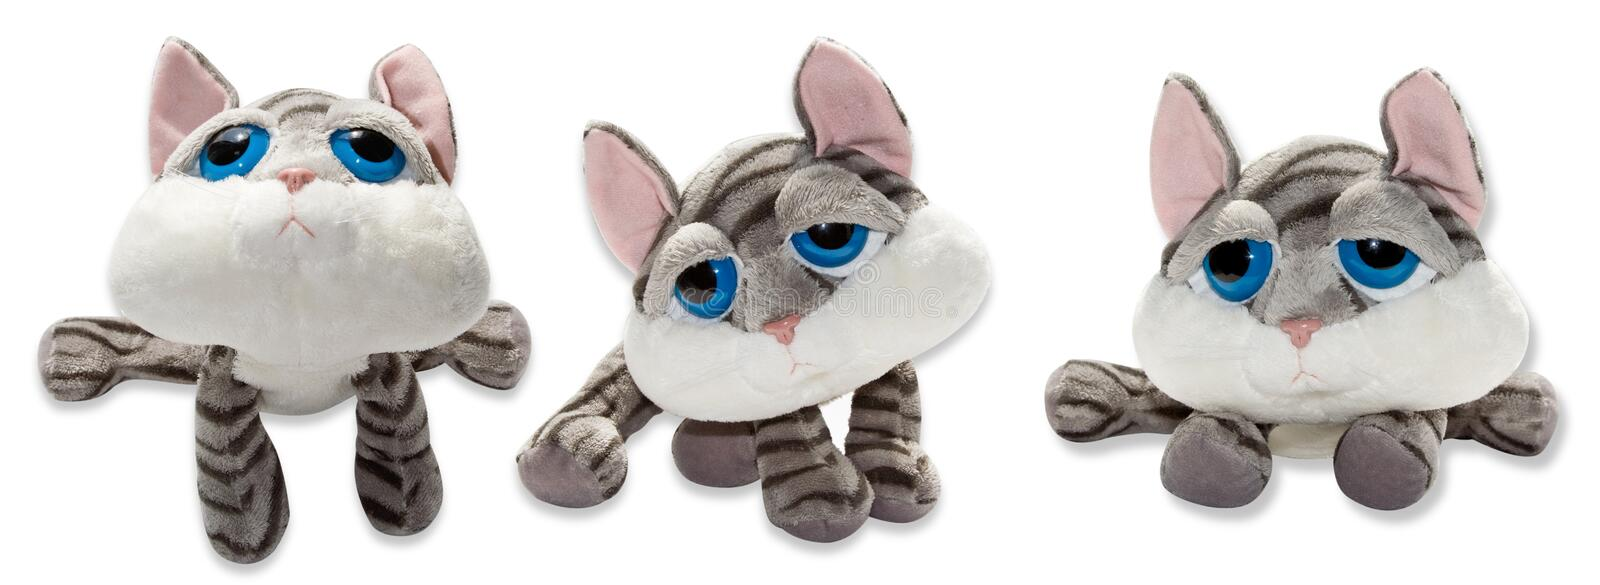 Toy cat stock images